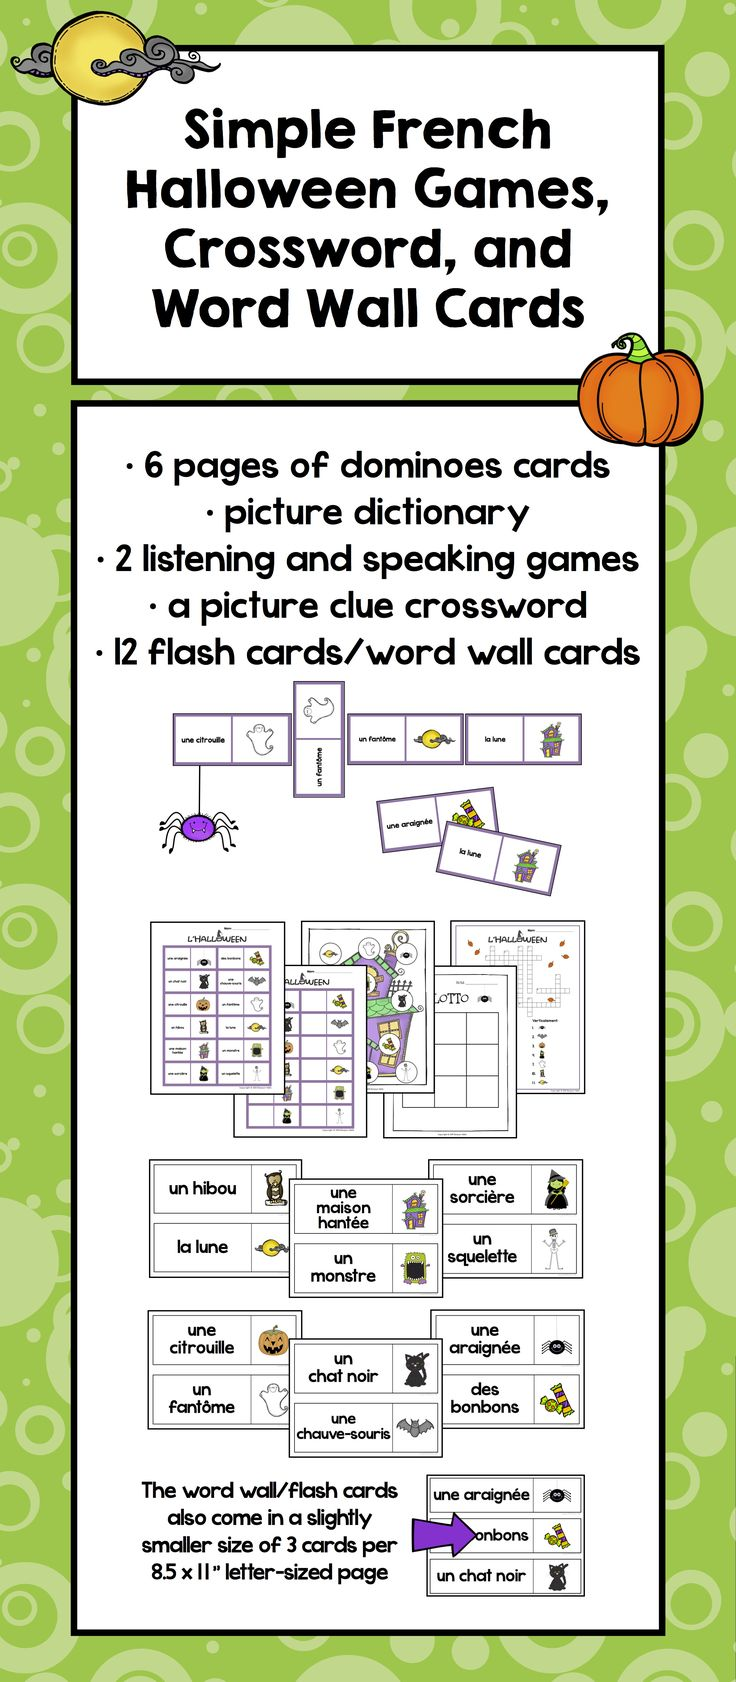 $ Simple French Halloween Games, Crossword, and Word Wall Cards